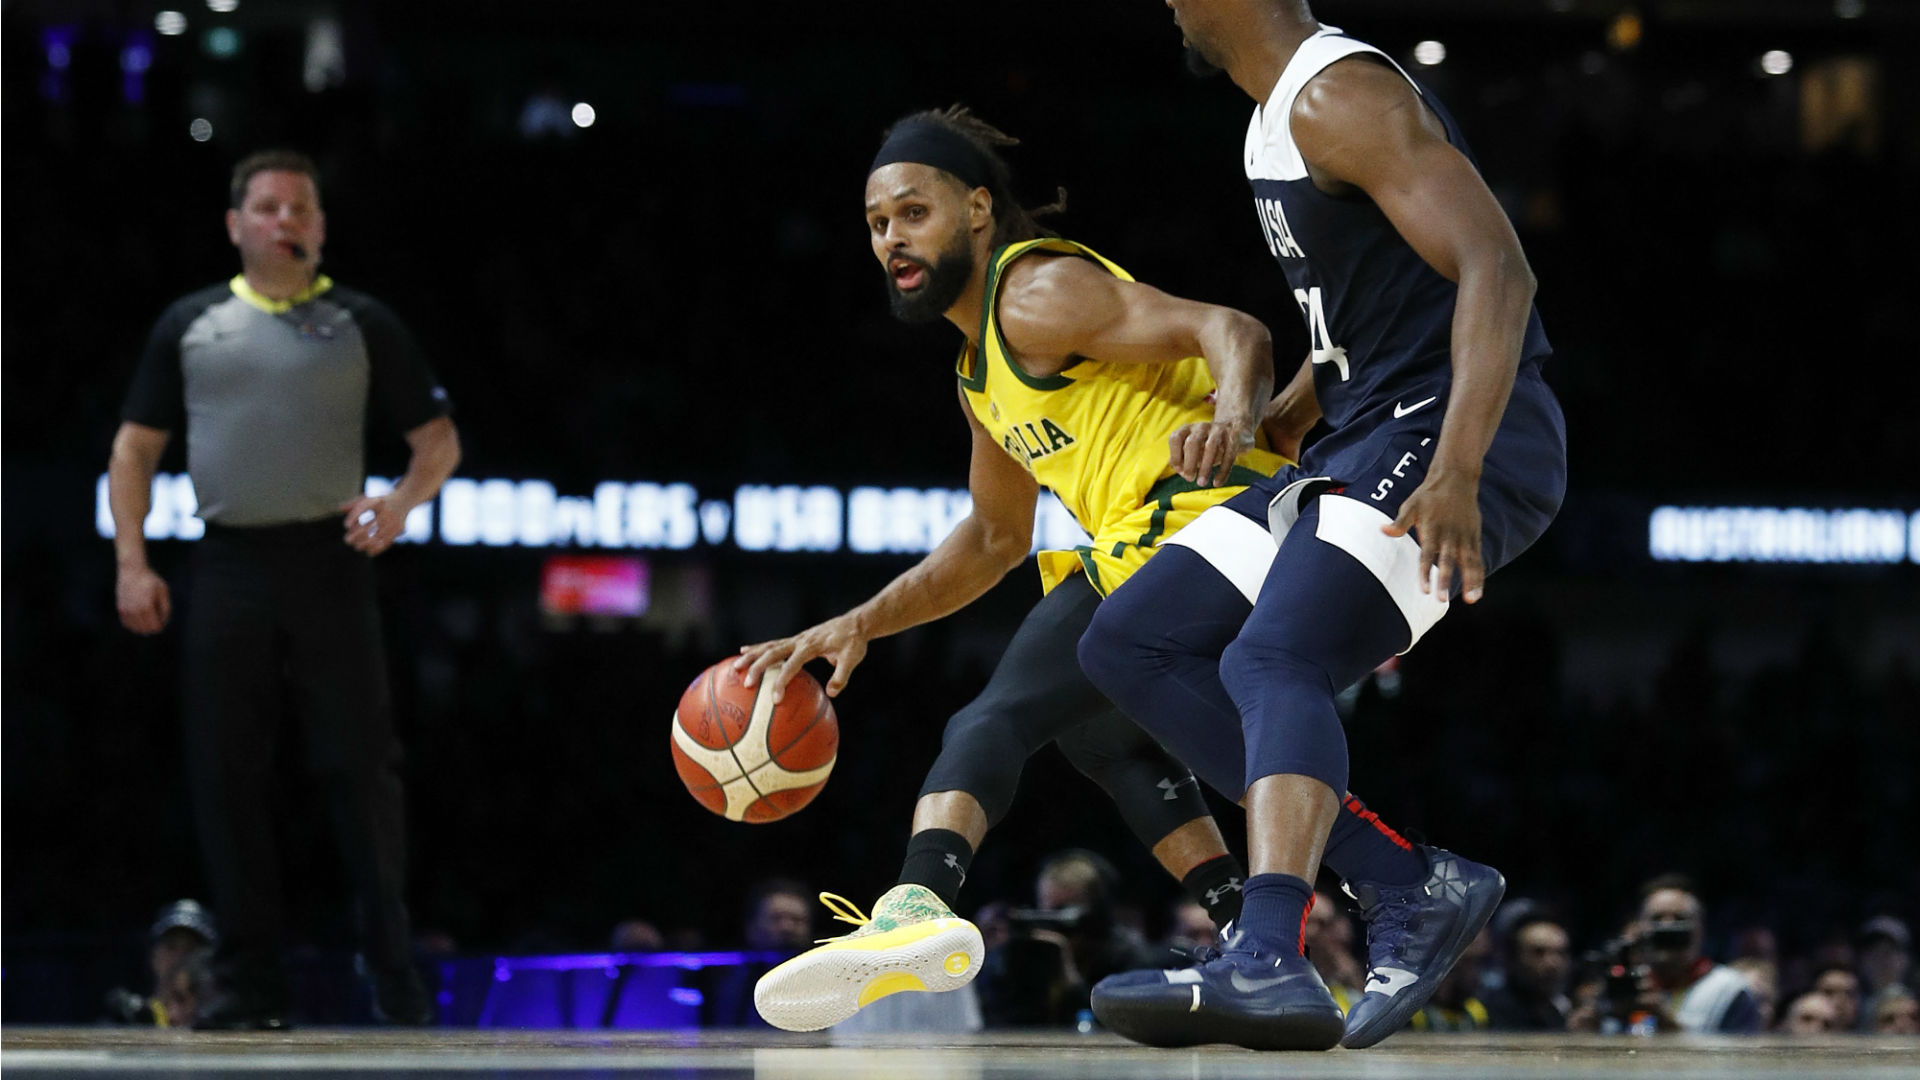 FIBA World Cup 2019: Patty Mills calls Aussies' win over U.S. 'a building block for us'